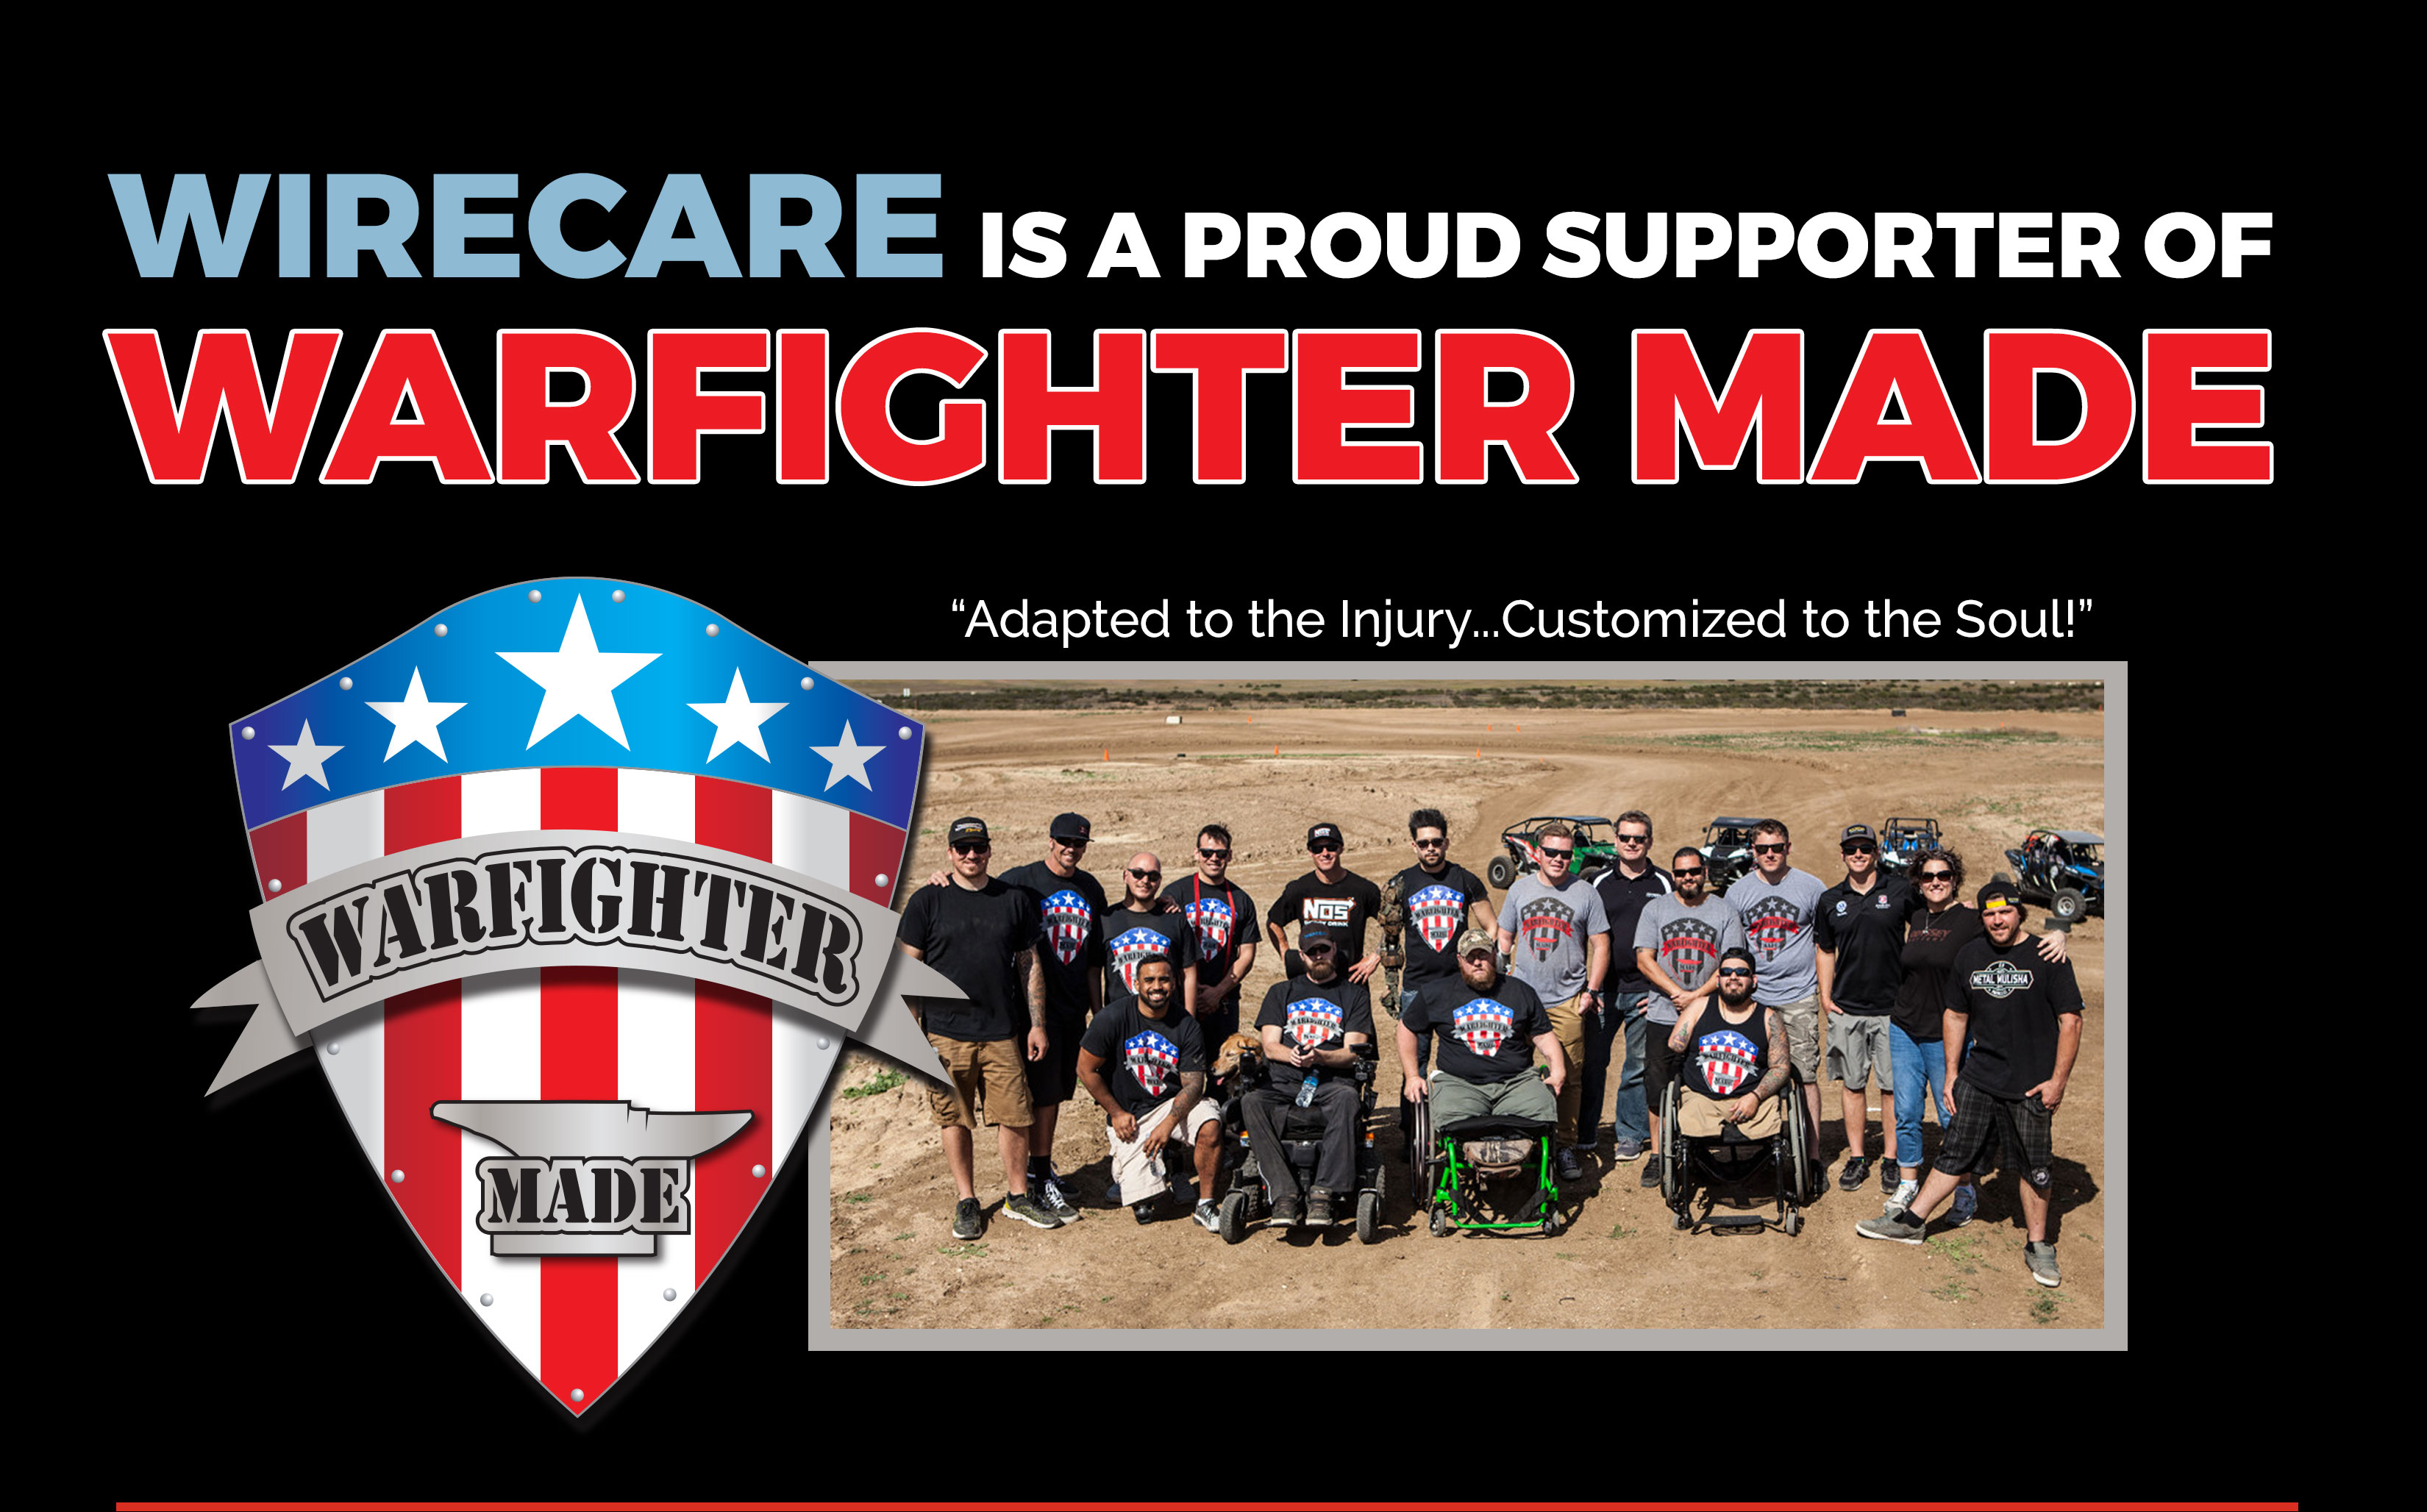 Wirecare proudly supports Warfighter made